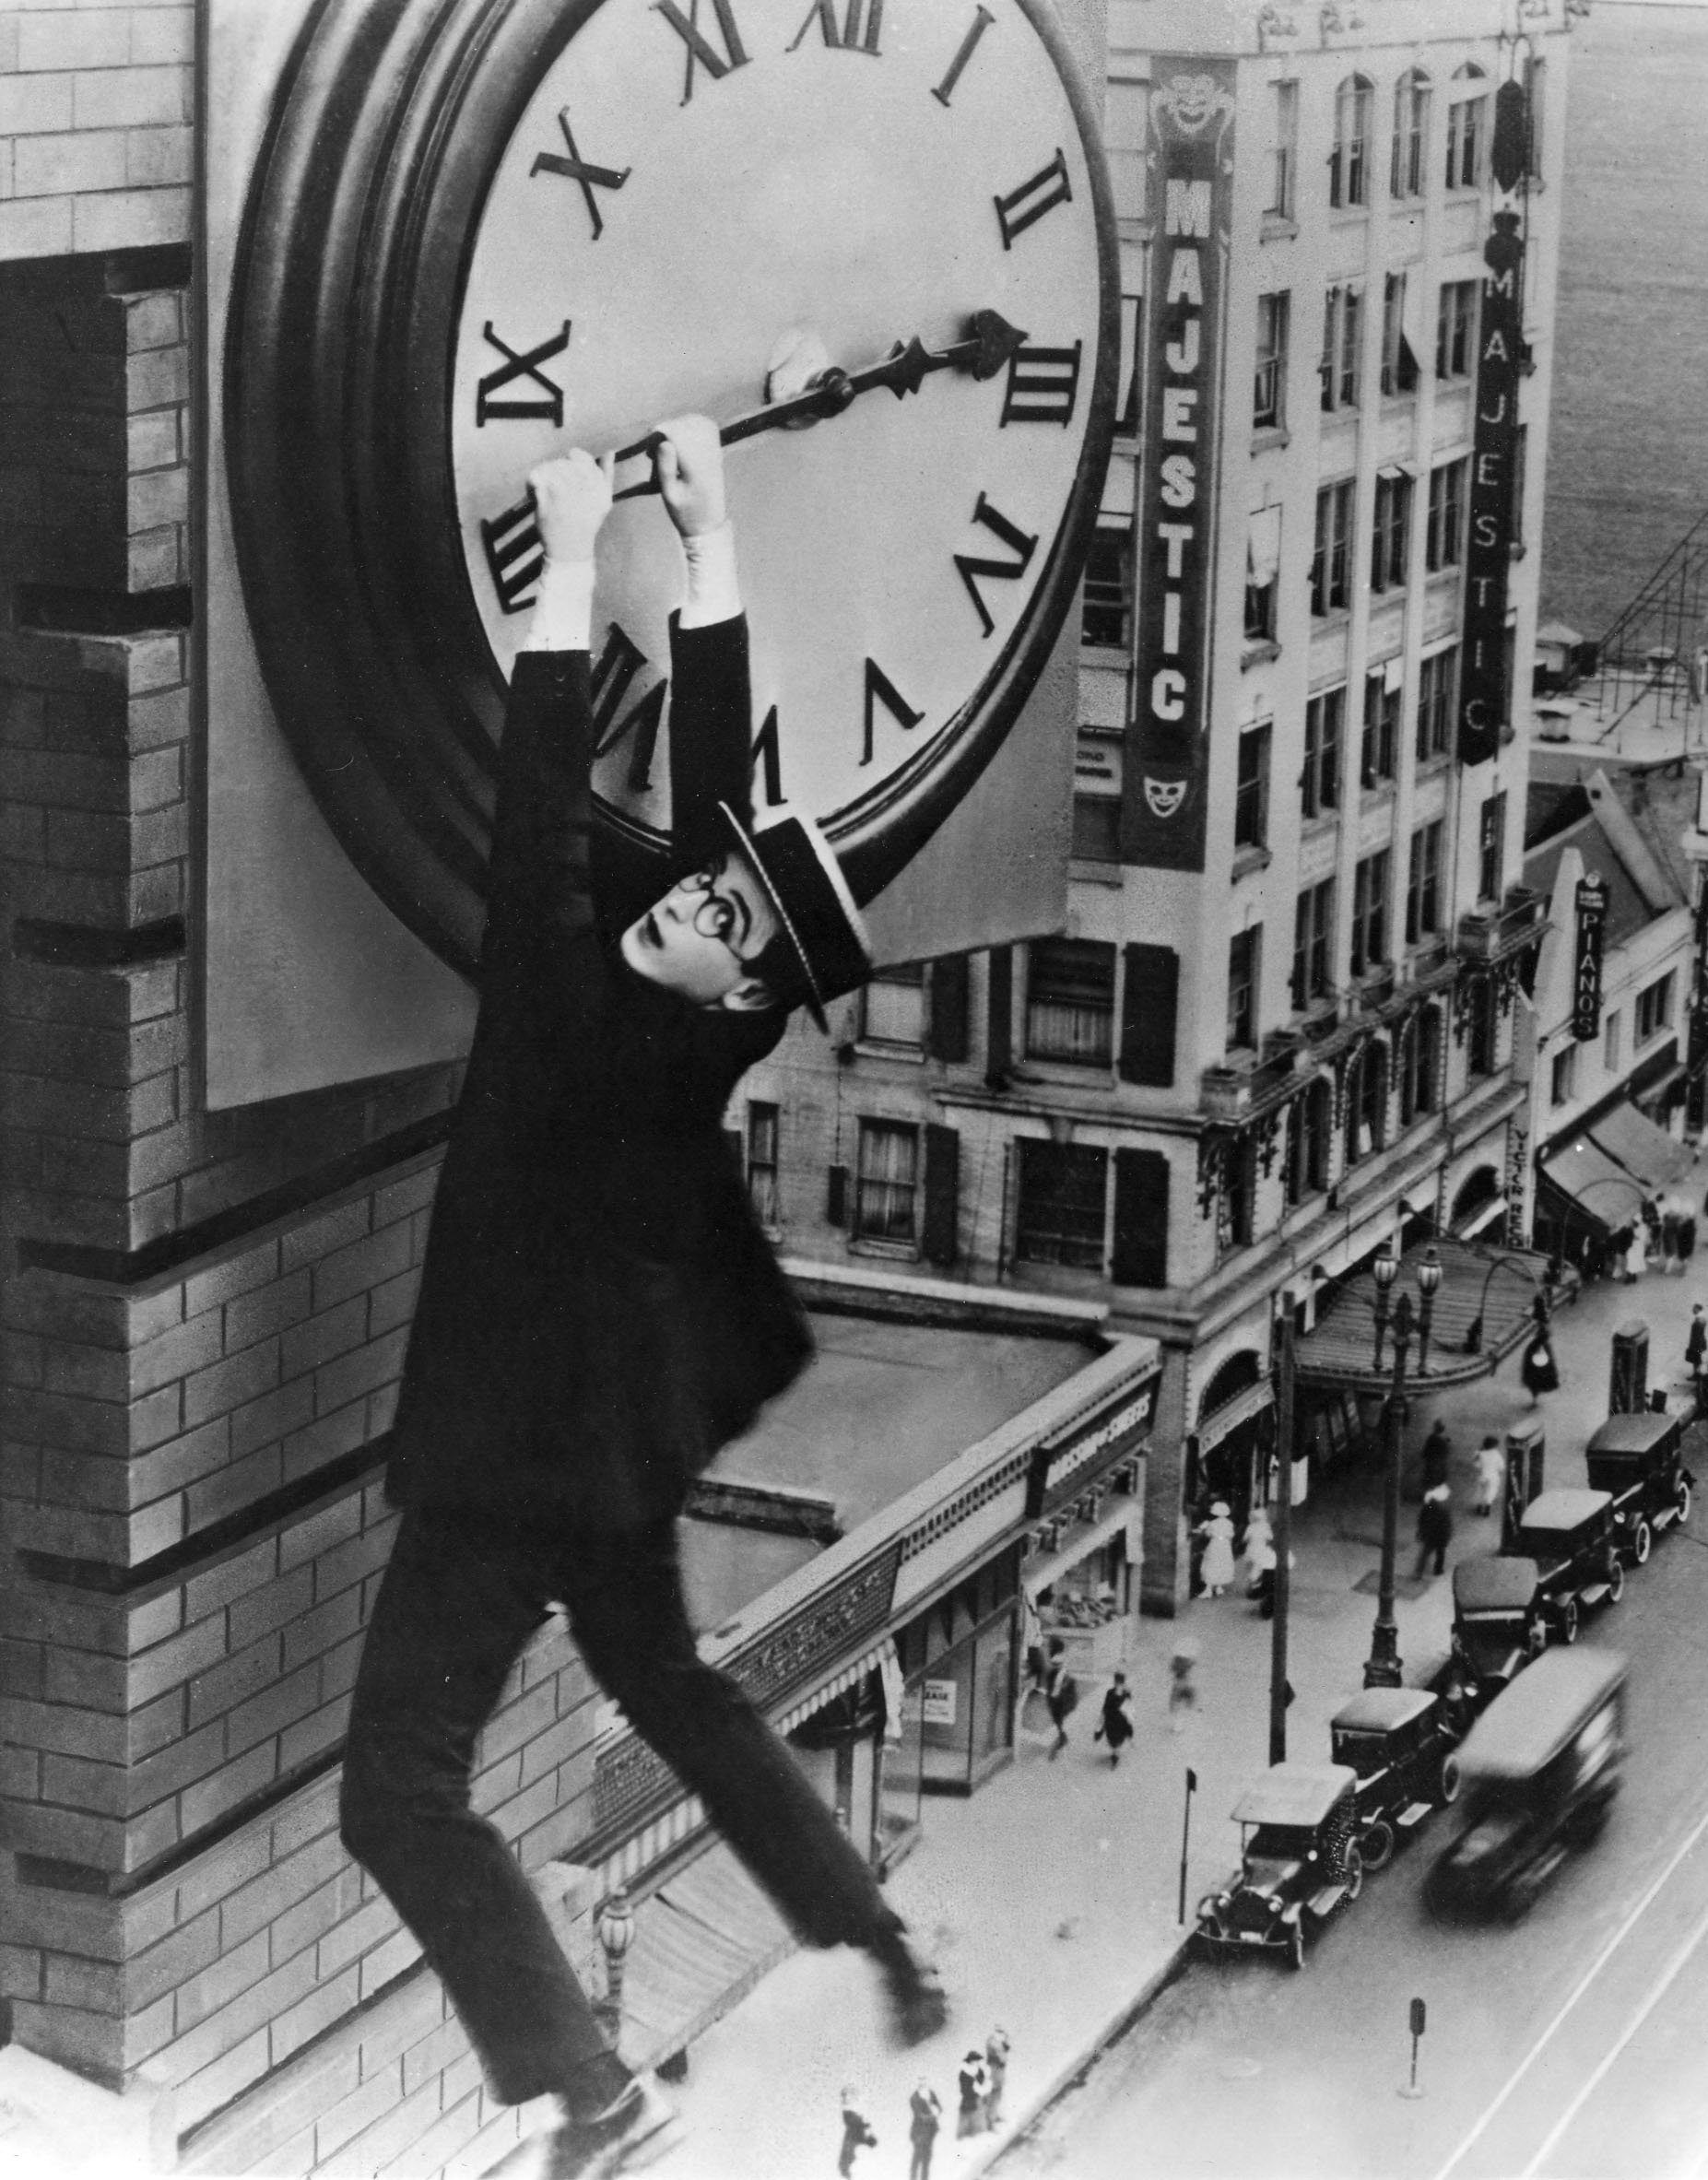 Haold Lloyd dangles from a clock high above a street stopping time itself even as daylight savings time fights crime by making criminals less likely to act.